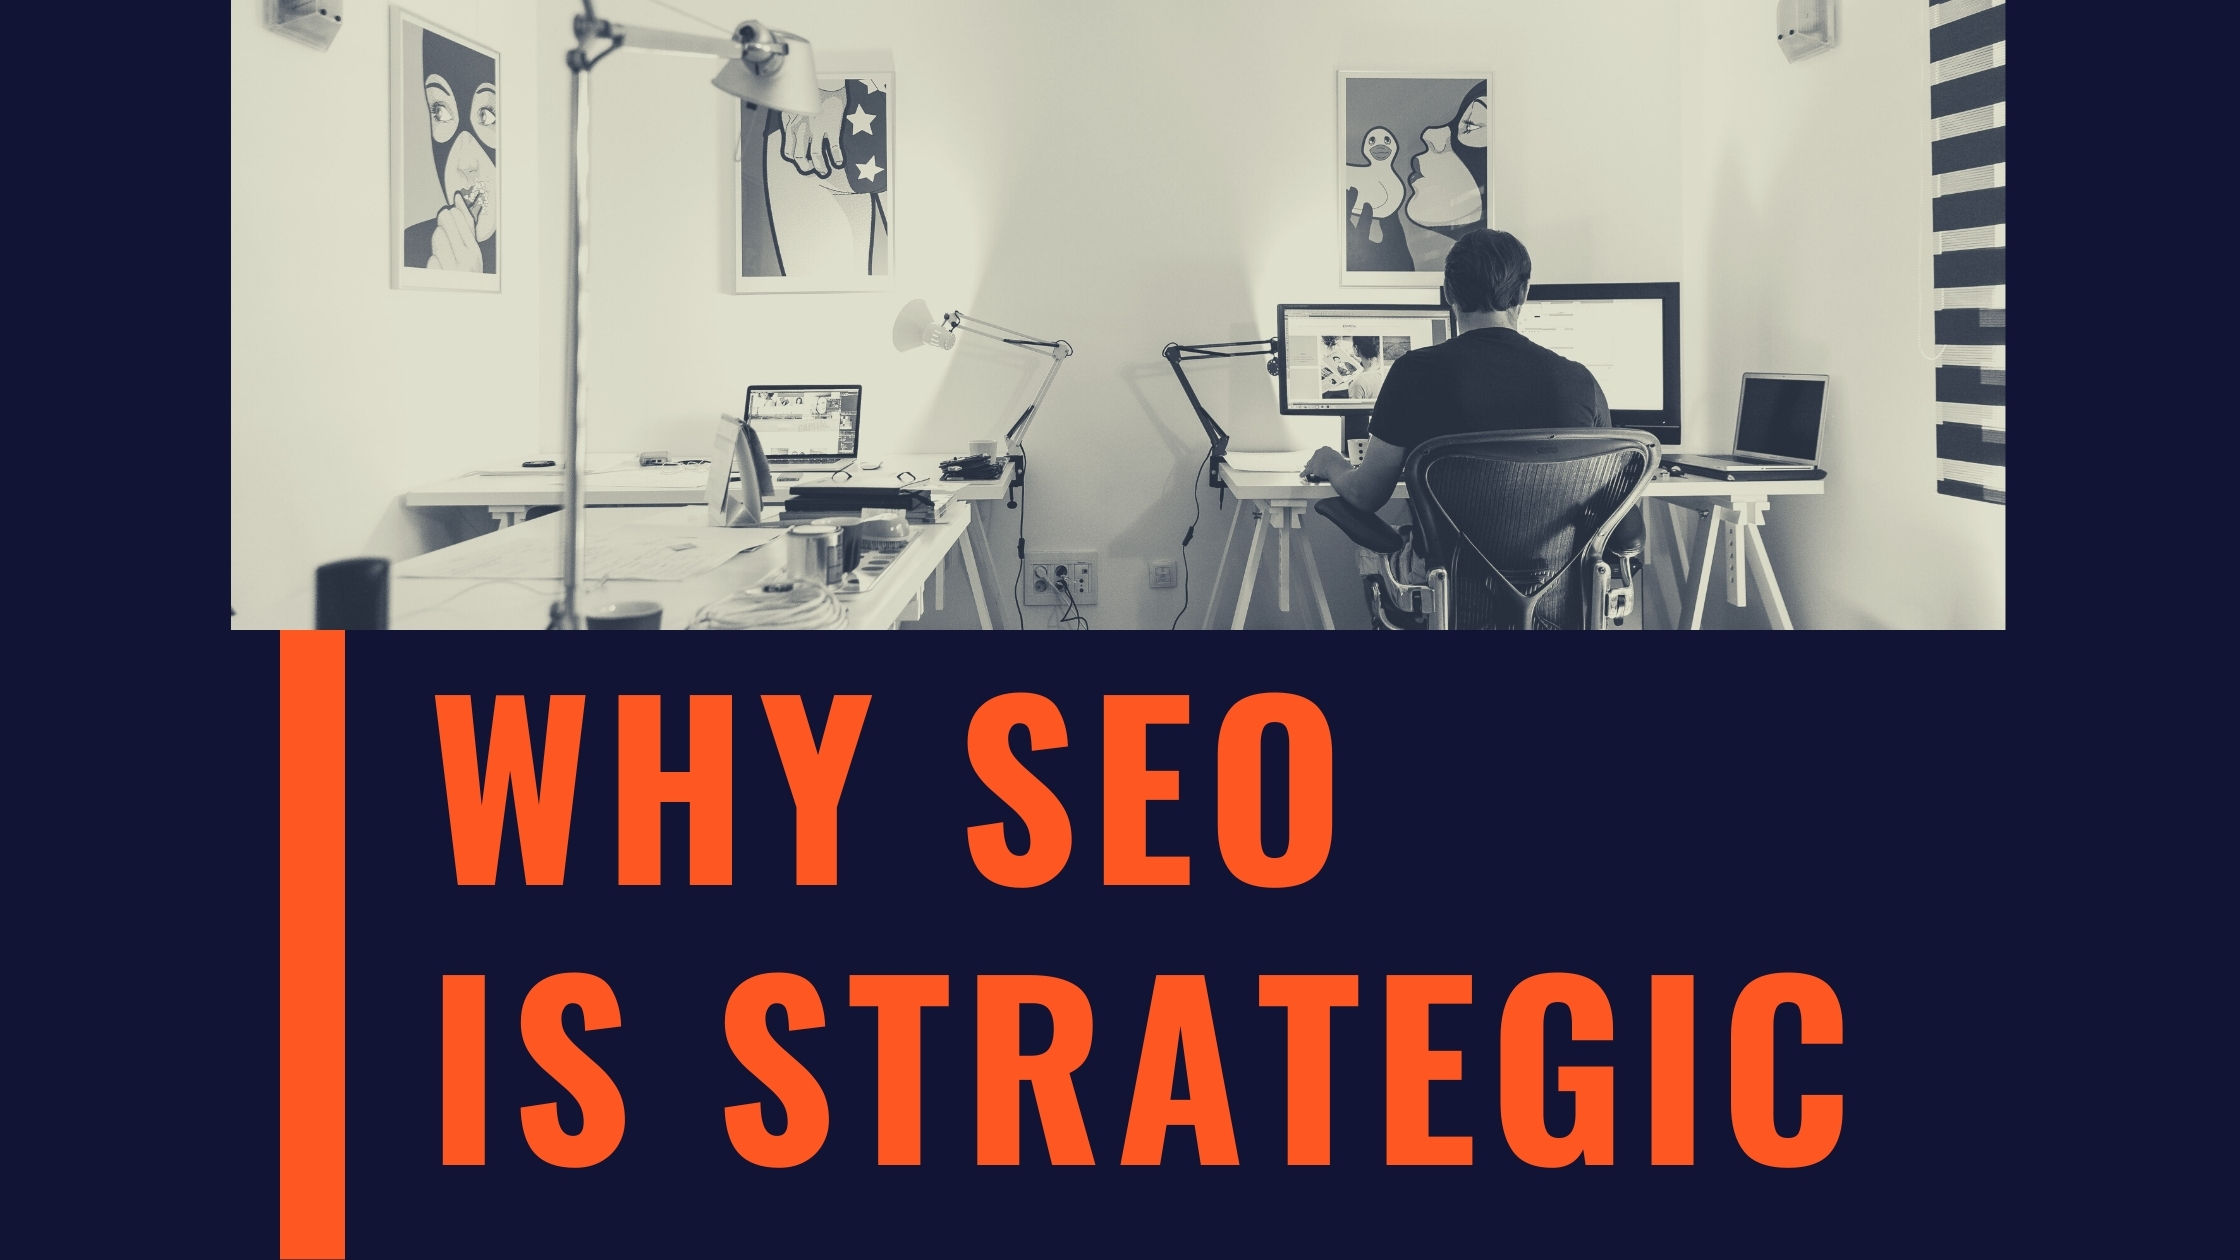 Why SEO is strategic